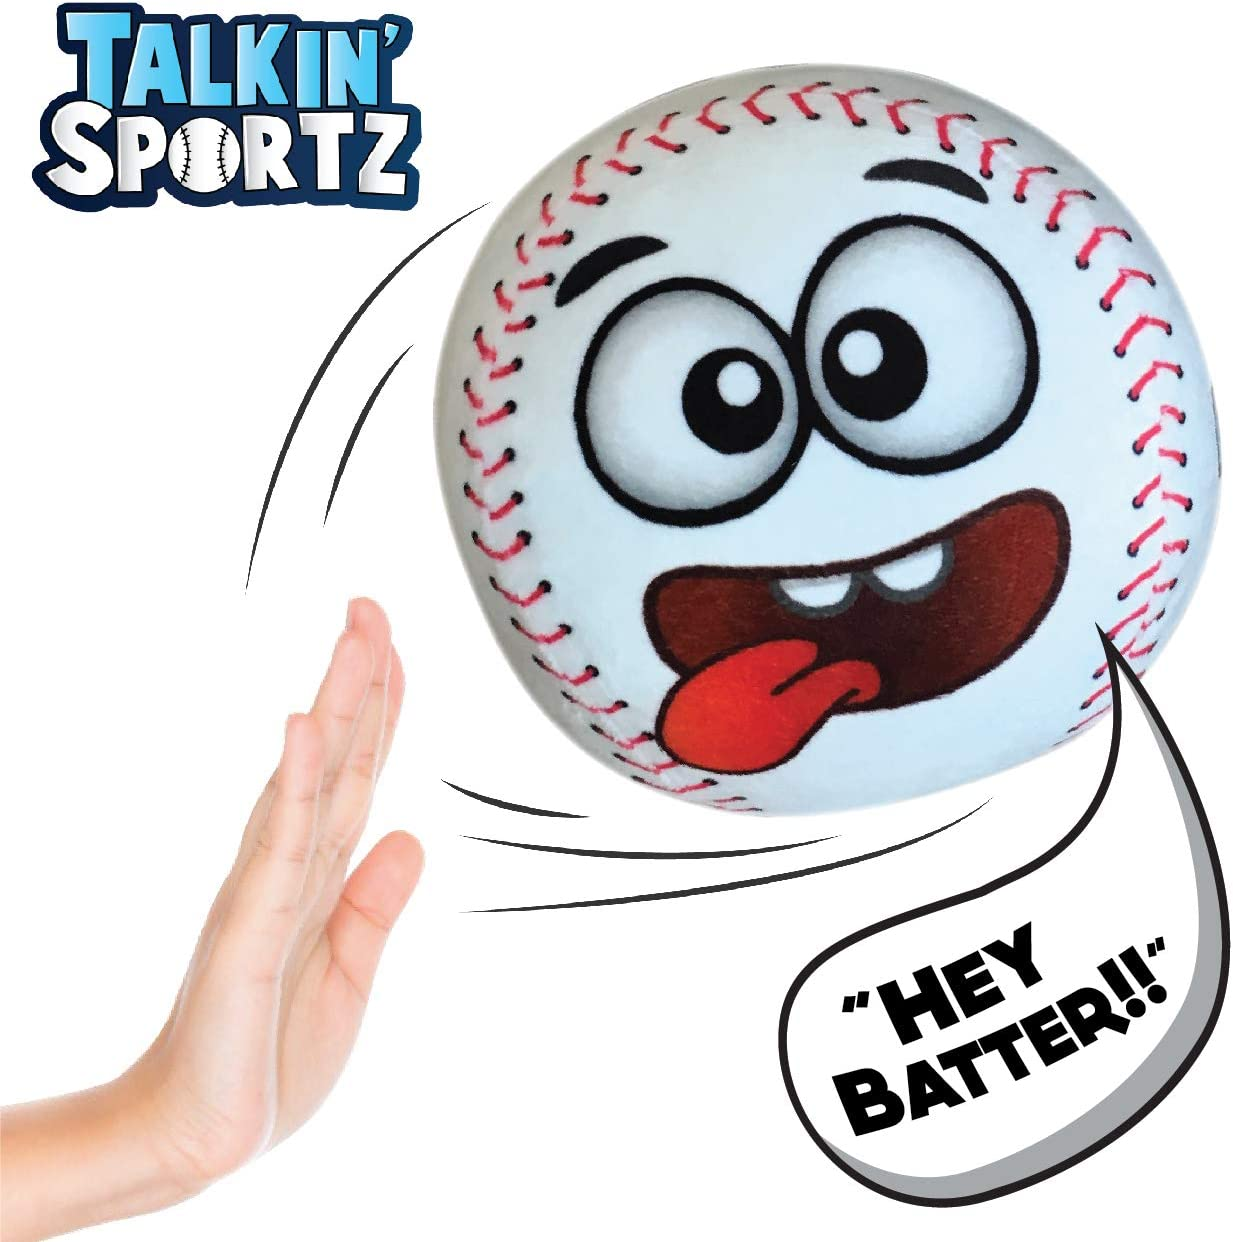 Interactive Baseball Toy with Sound Effects